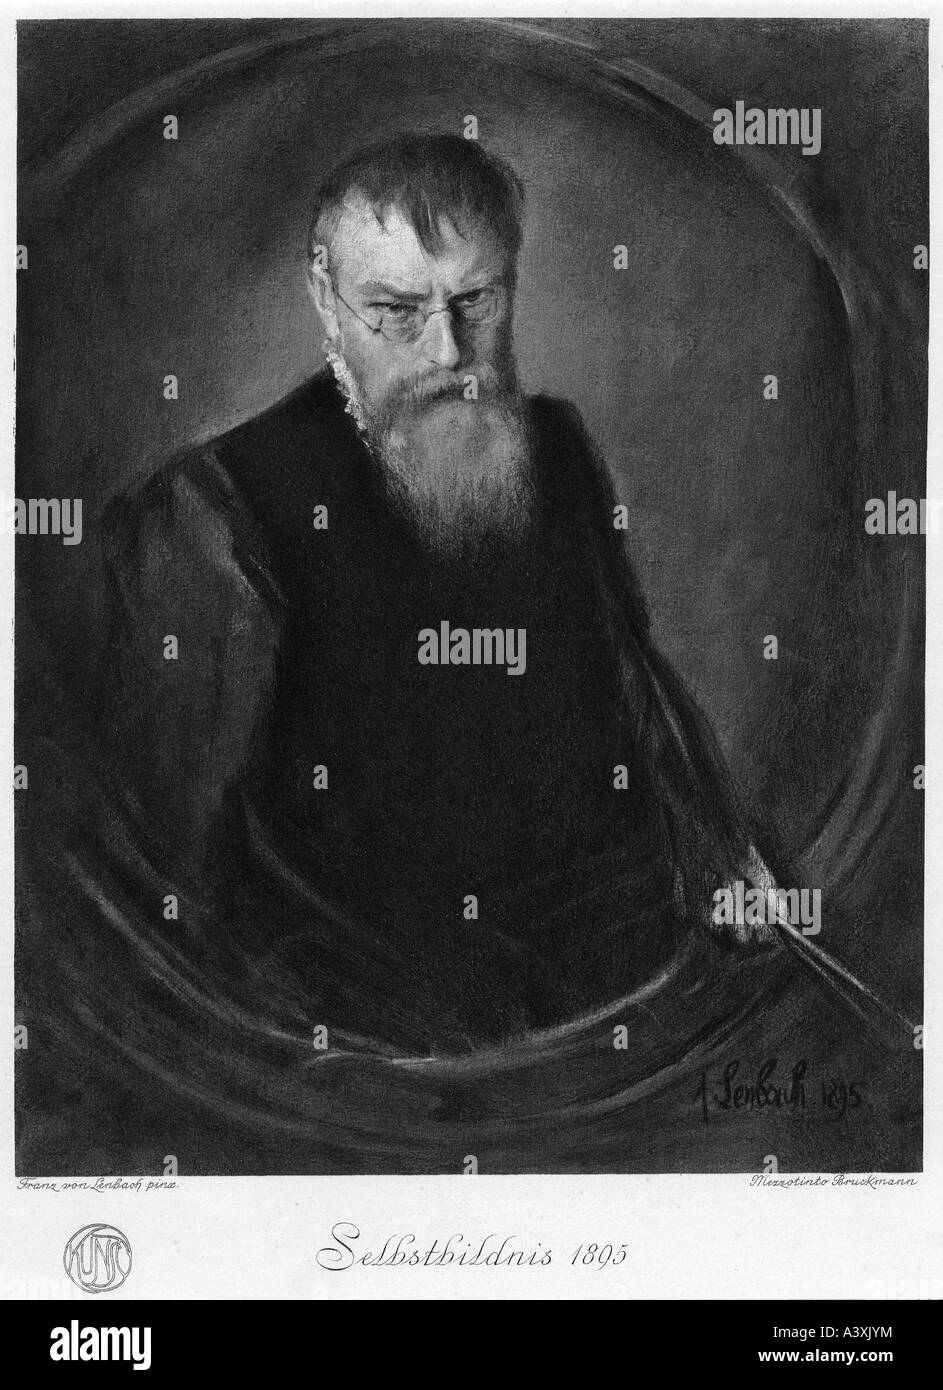 Lenbach, Franz von, 13.12.1836 - 6.5.1904, German painter, selfportait, mezzotint engraving by Bruckmann after painting, - Stock Image